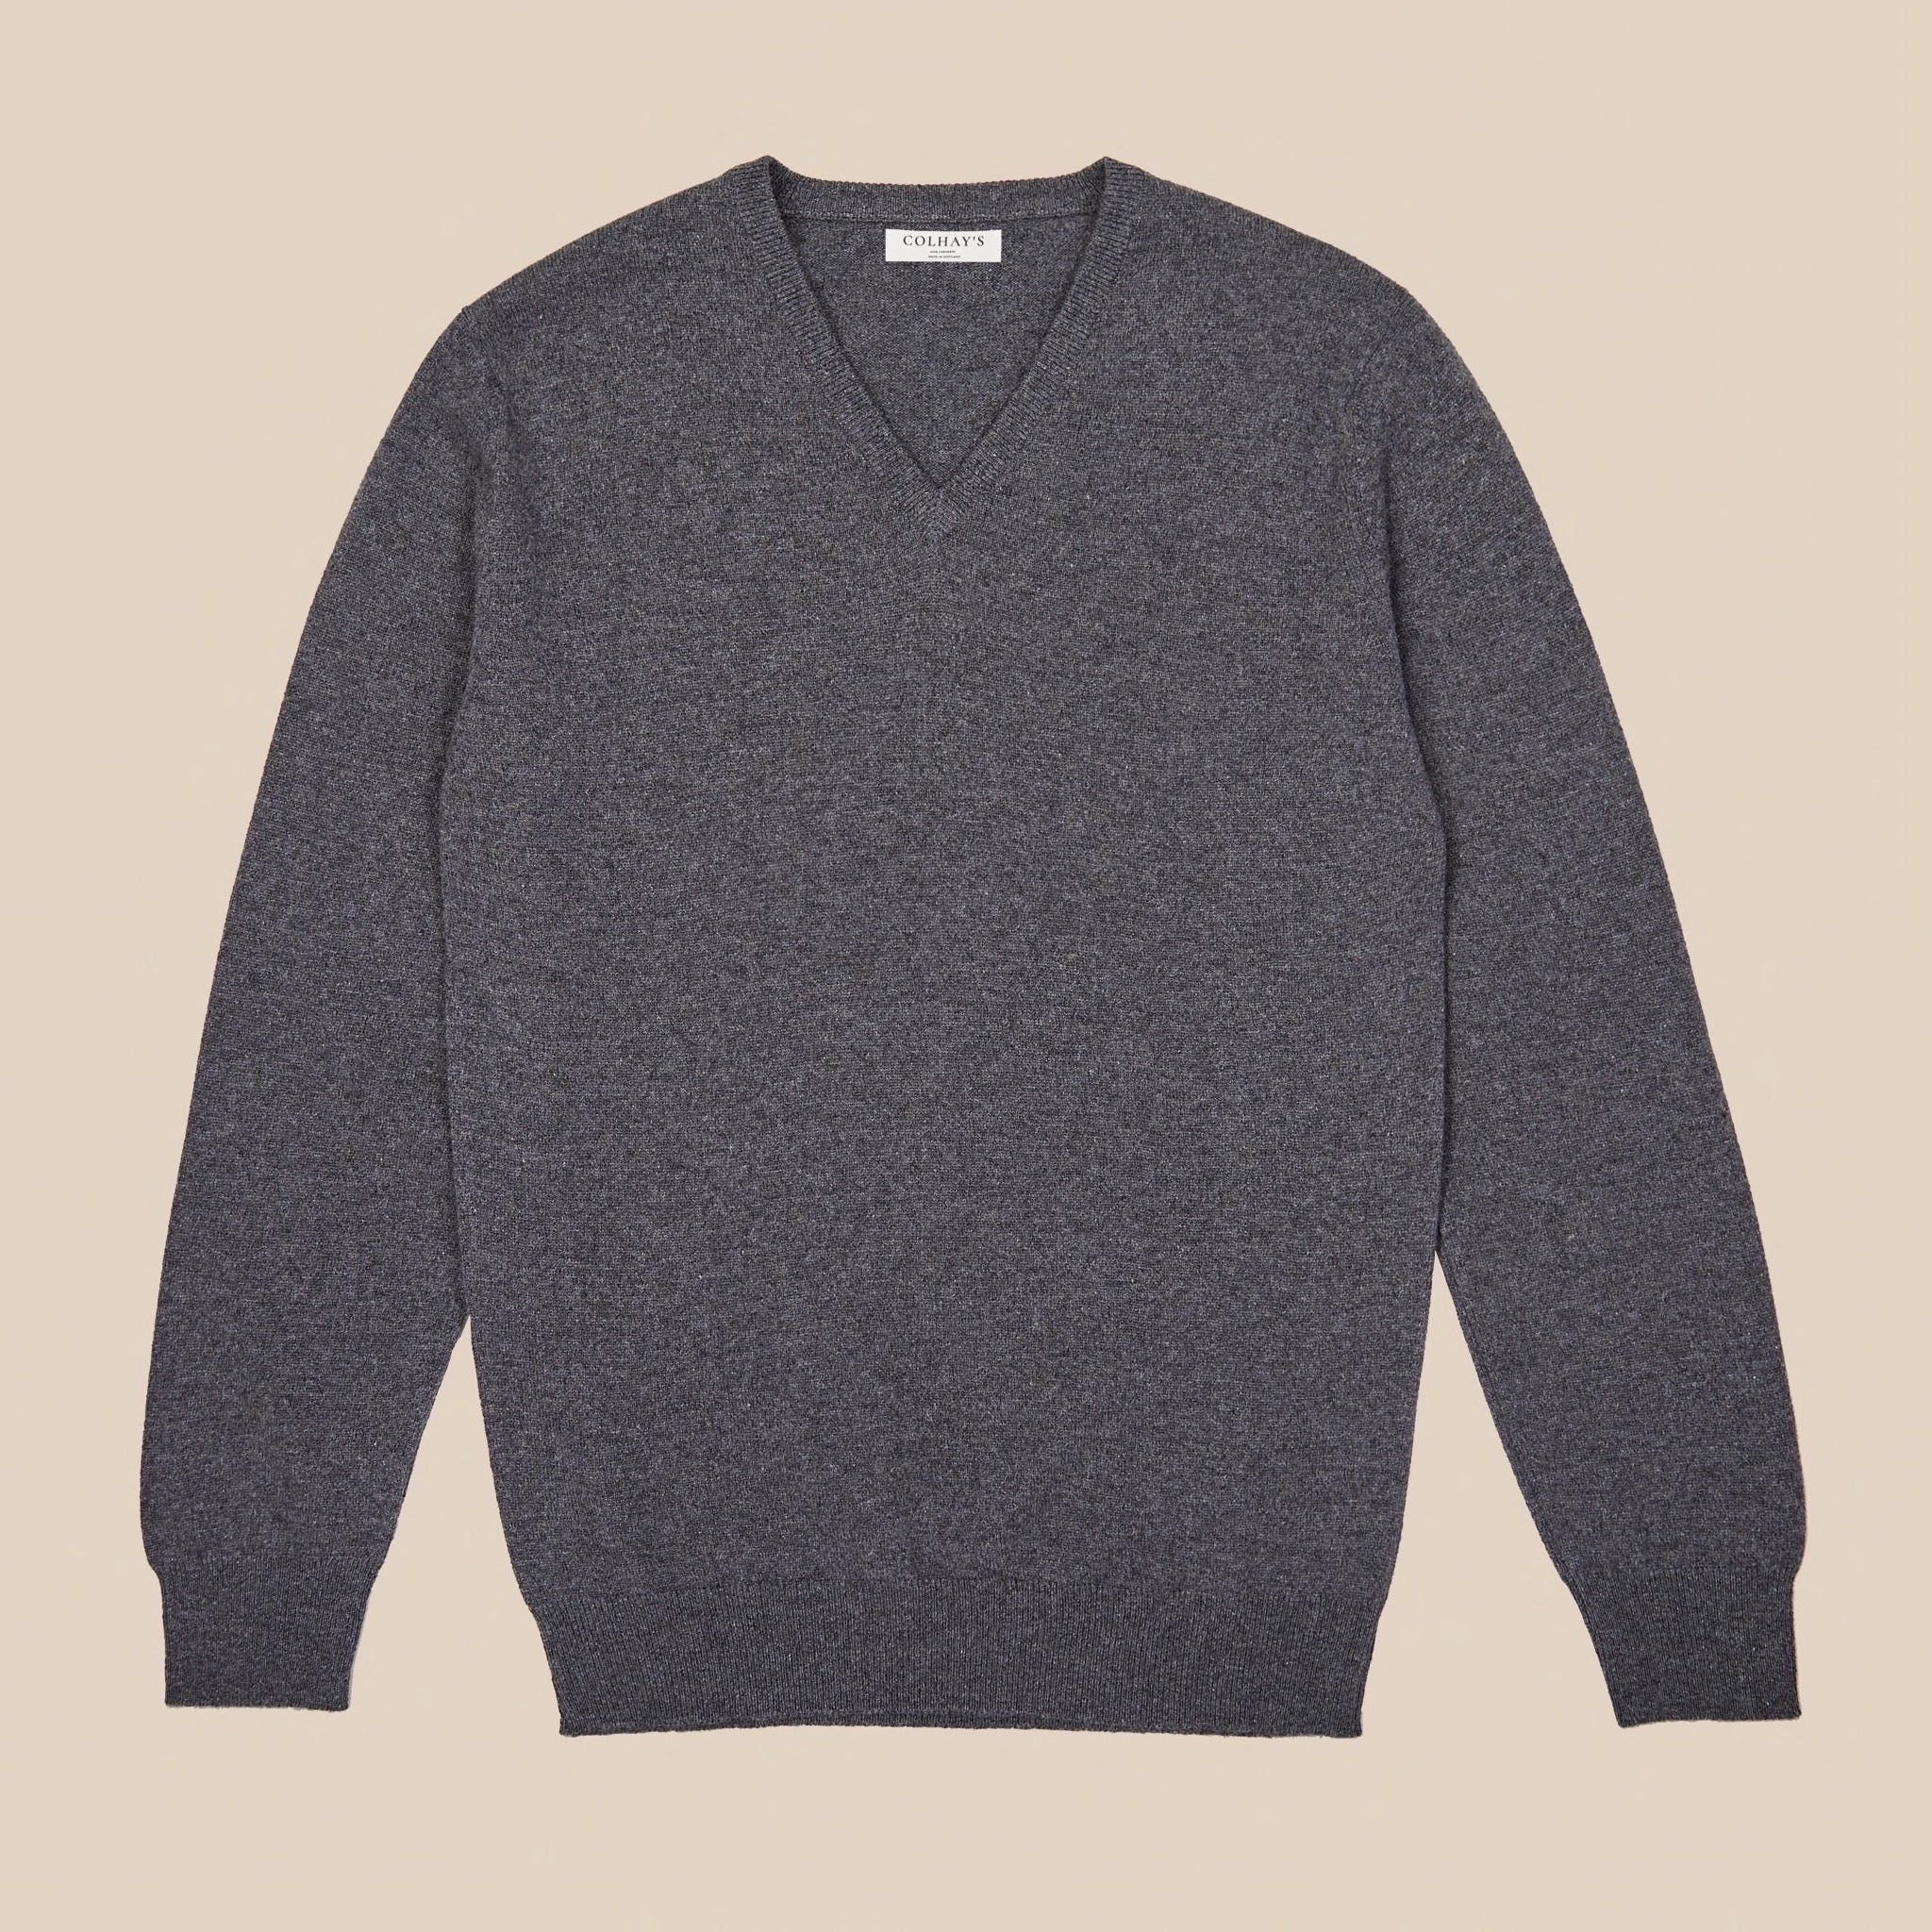 Cashmere v neck in grey